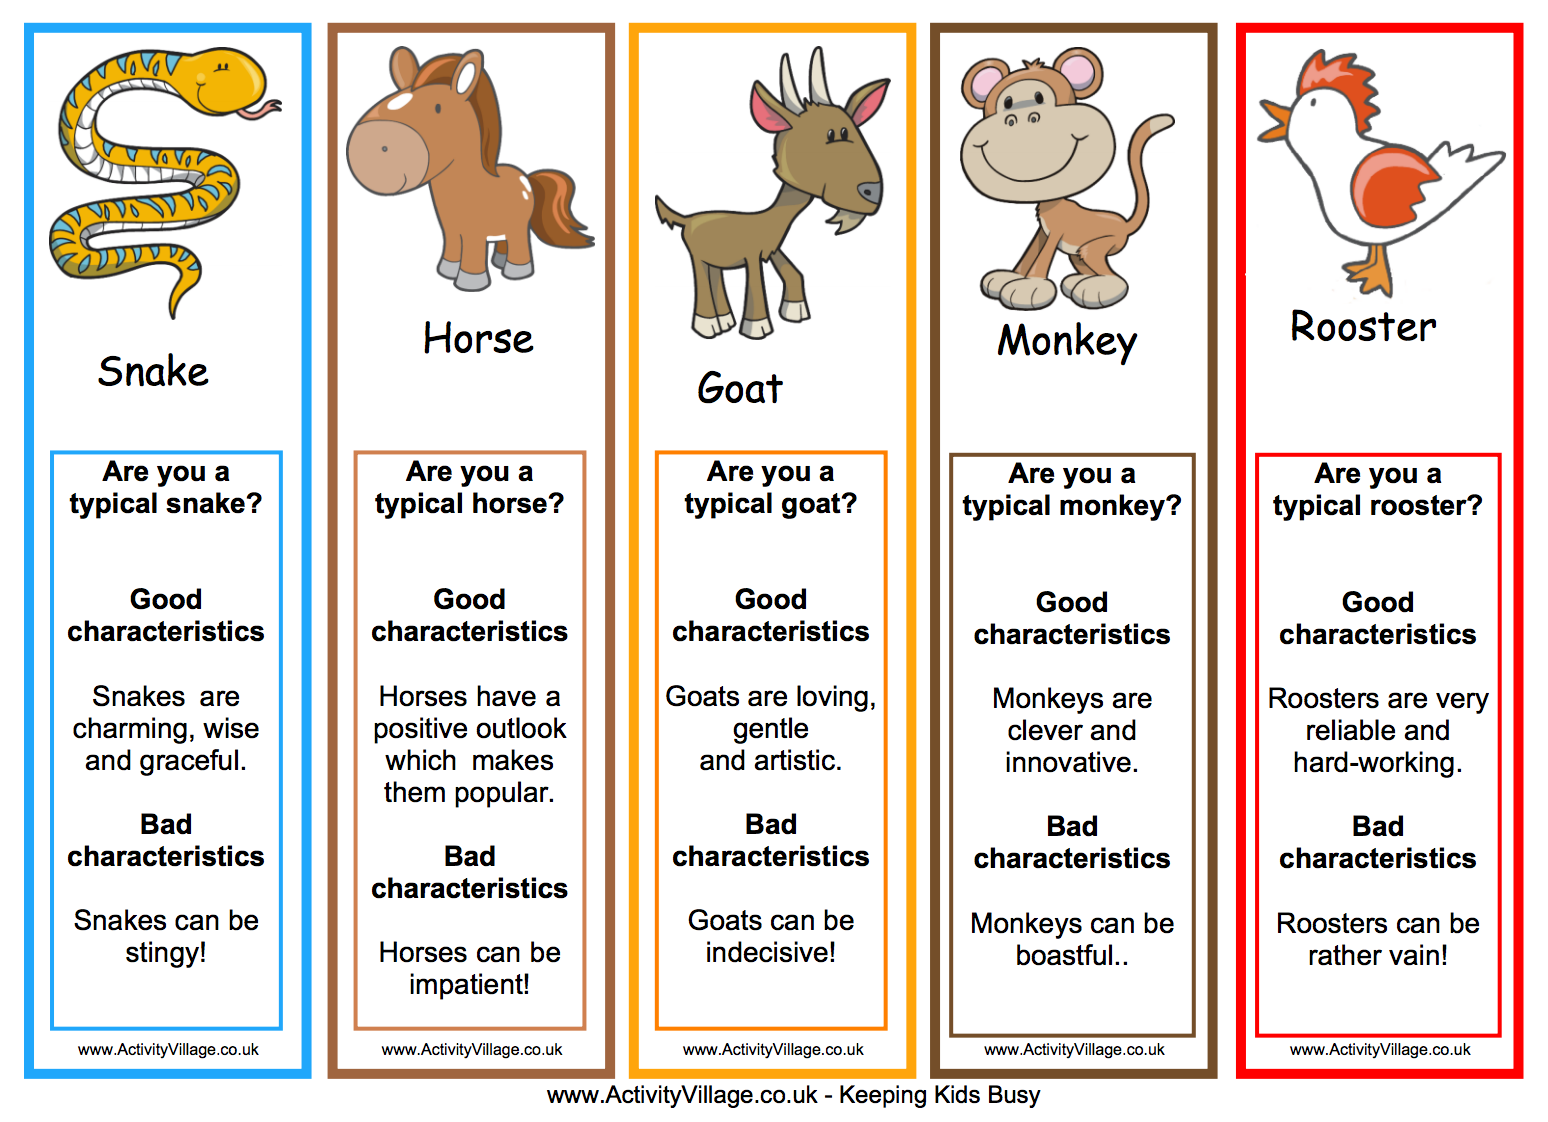 Hit Home Run Emin Year Boar And Jackie Robinsonem on Kindergarten Attributes Worksheets